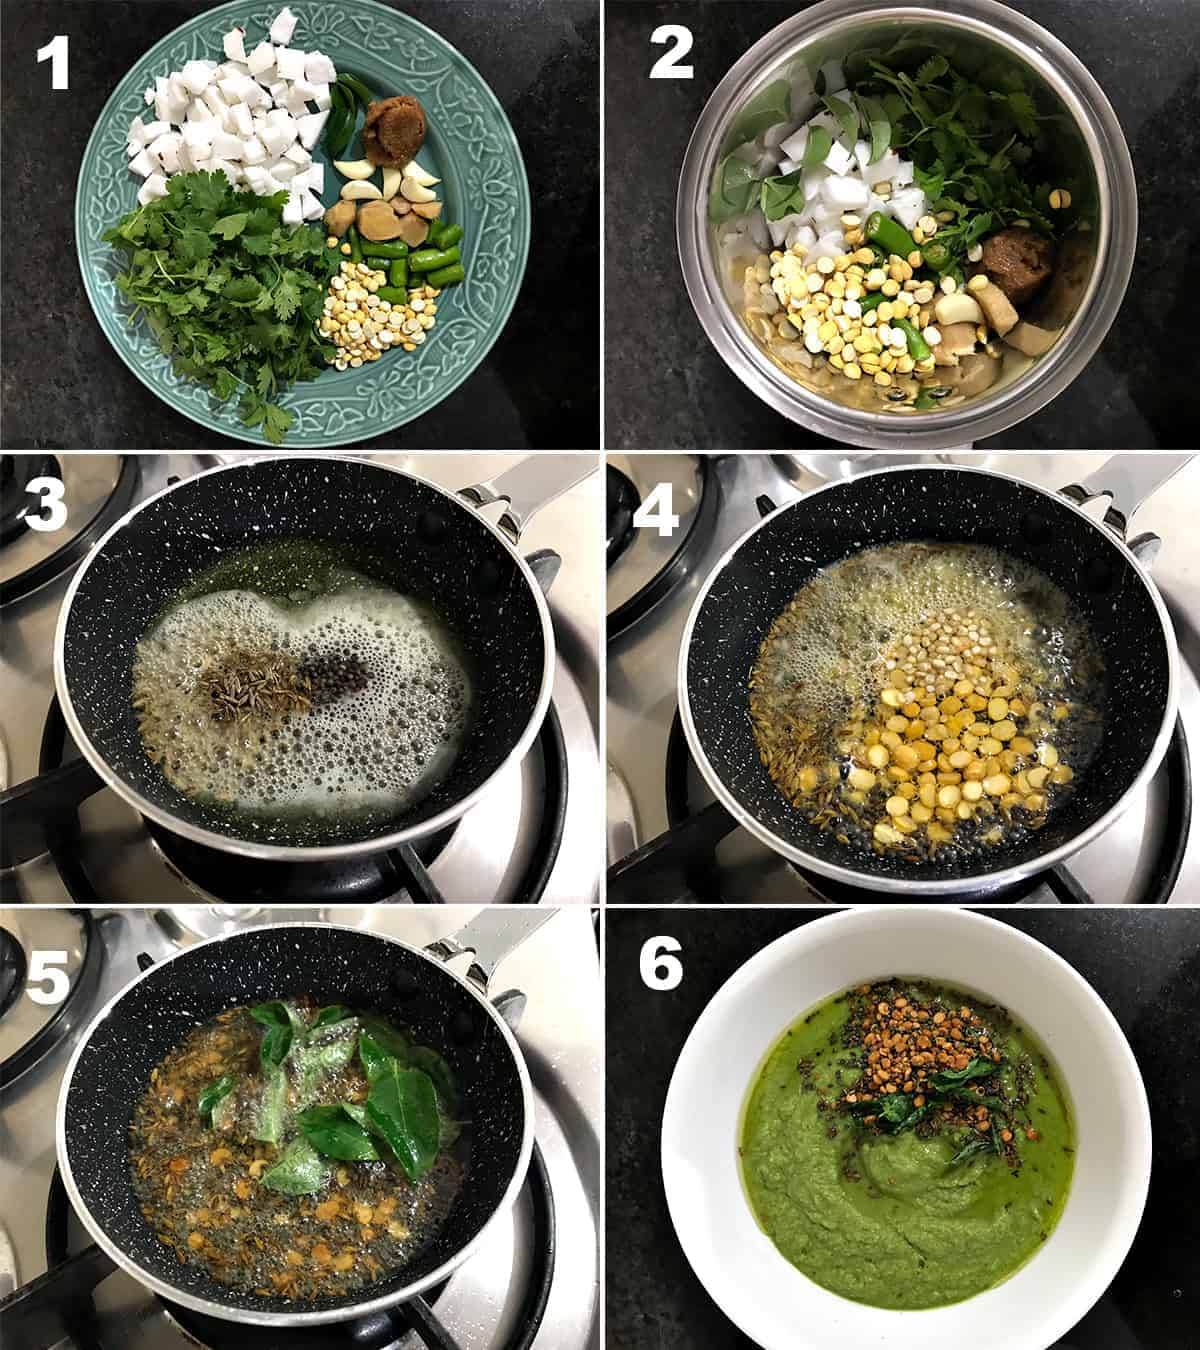 Step by Step picture collage to show how to make green coconut chutney.